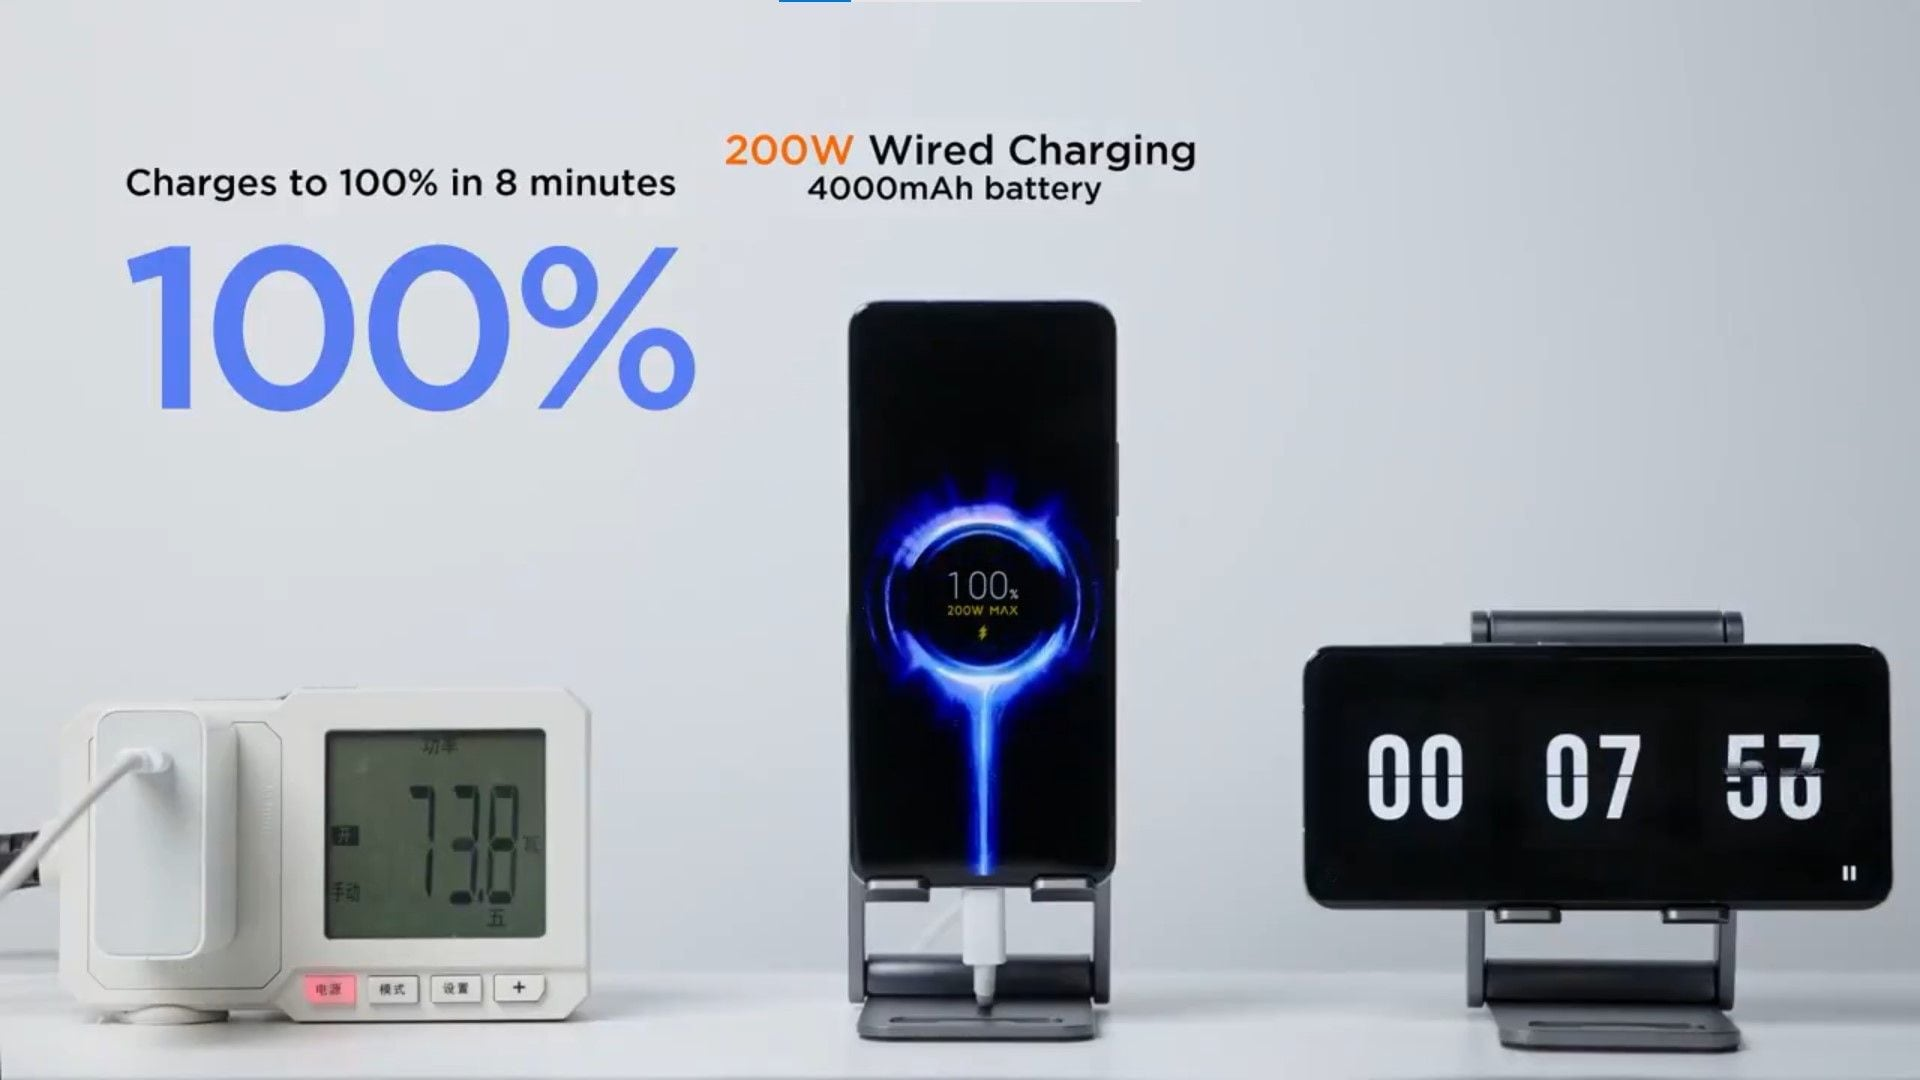 Xiaomi unveils 200 W HyperCharge technology, charges phone fully in just eight minutes- Technology News, Gadgetclock